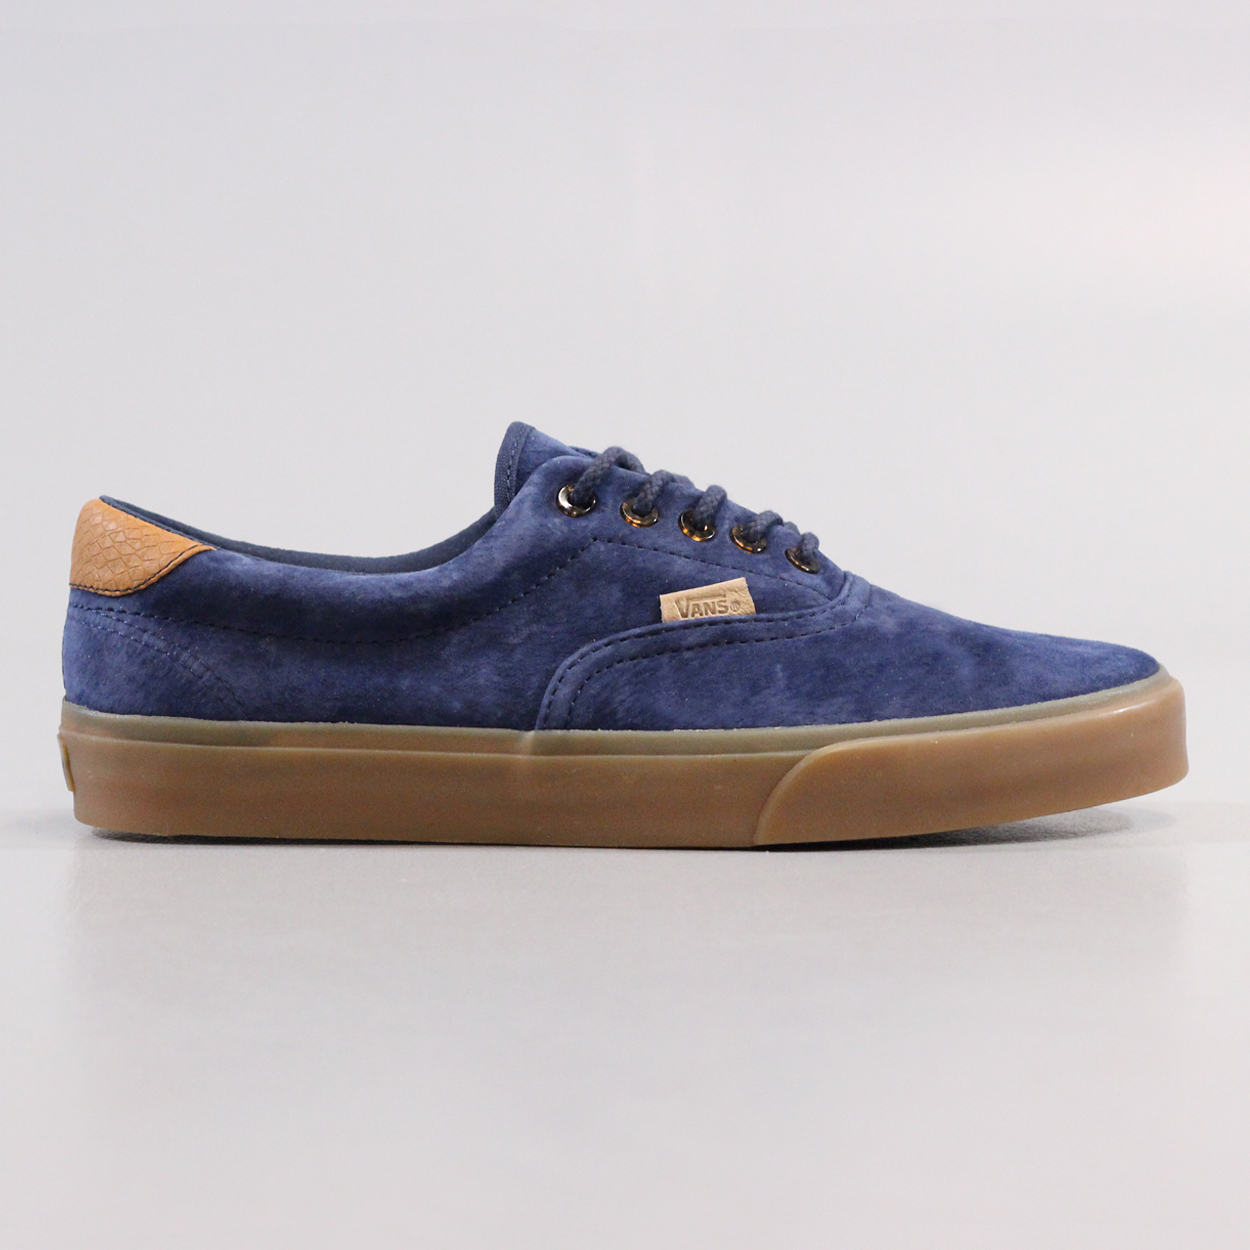 7c295bd7c360 Vans Era 59 California PS Skateboarding Shoes Dress Blues £42.00